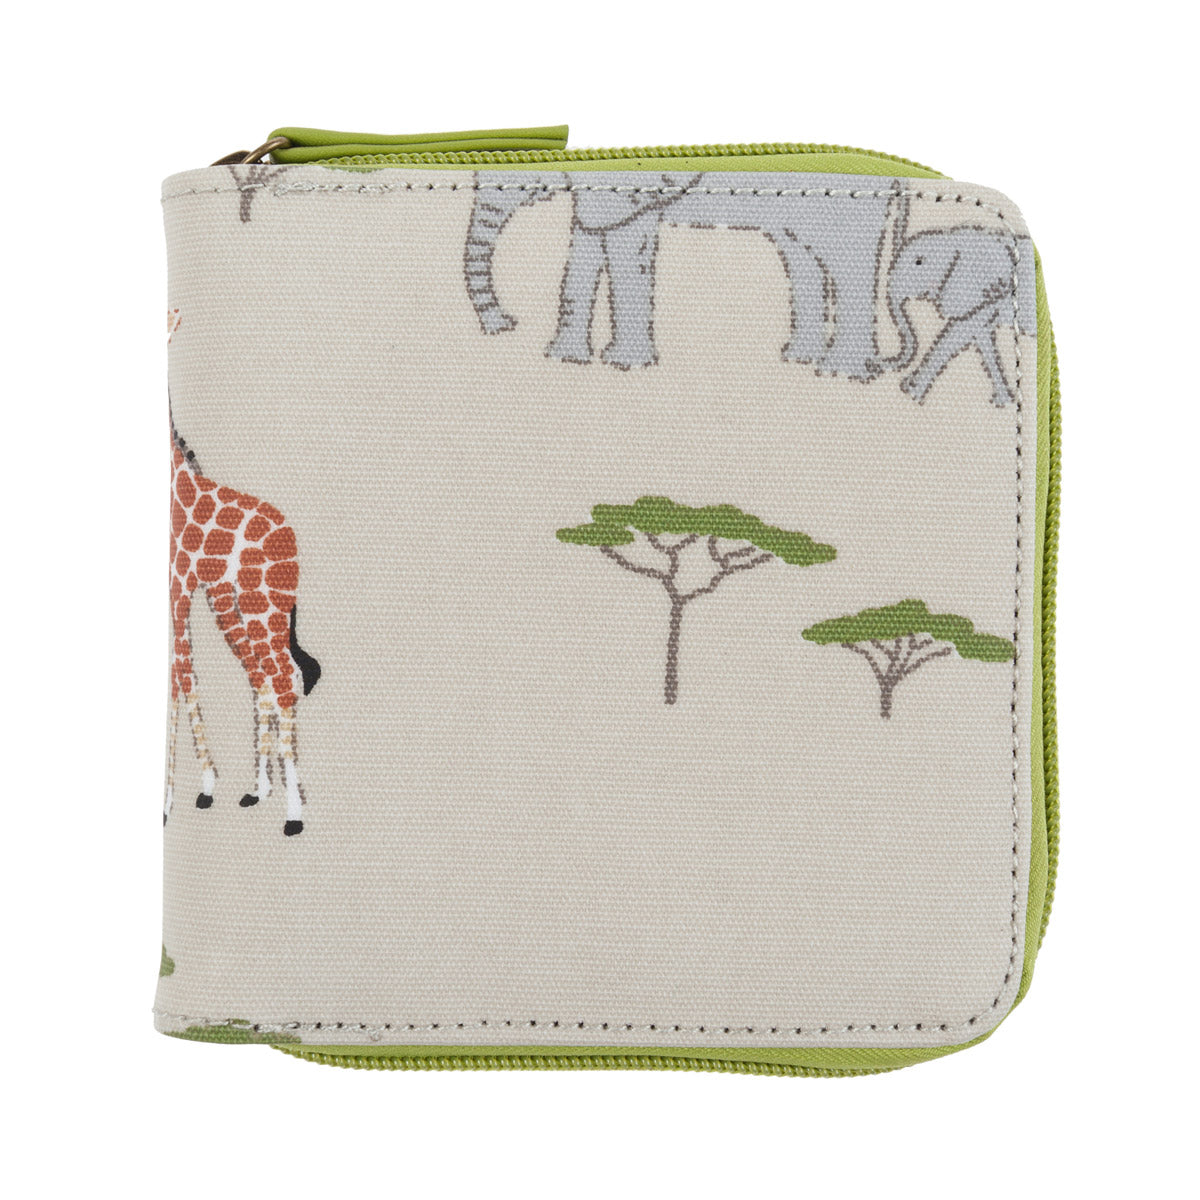 Safari Oilcloth Kids Wallet